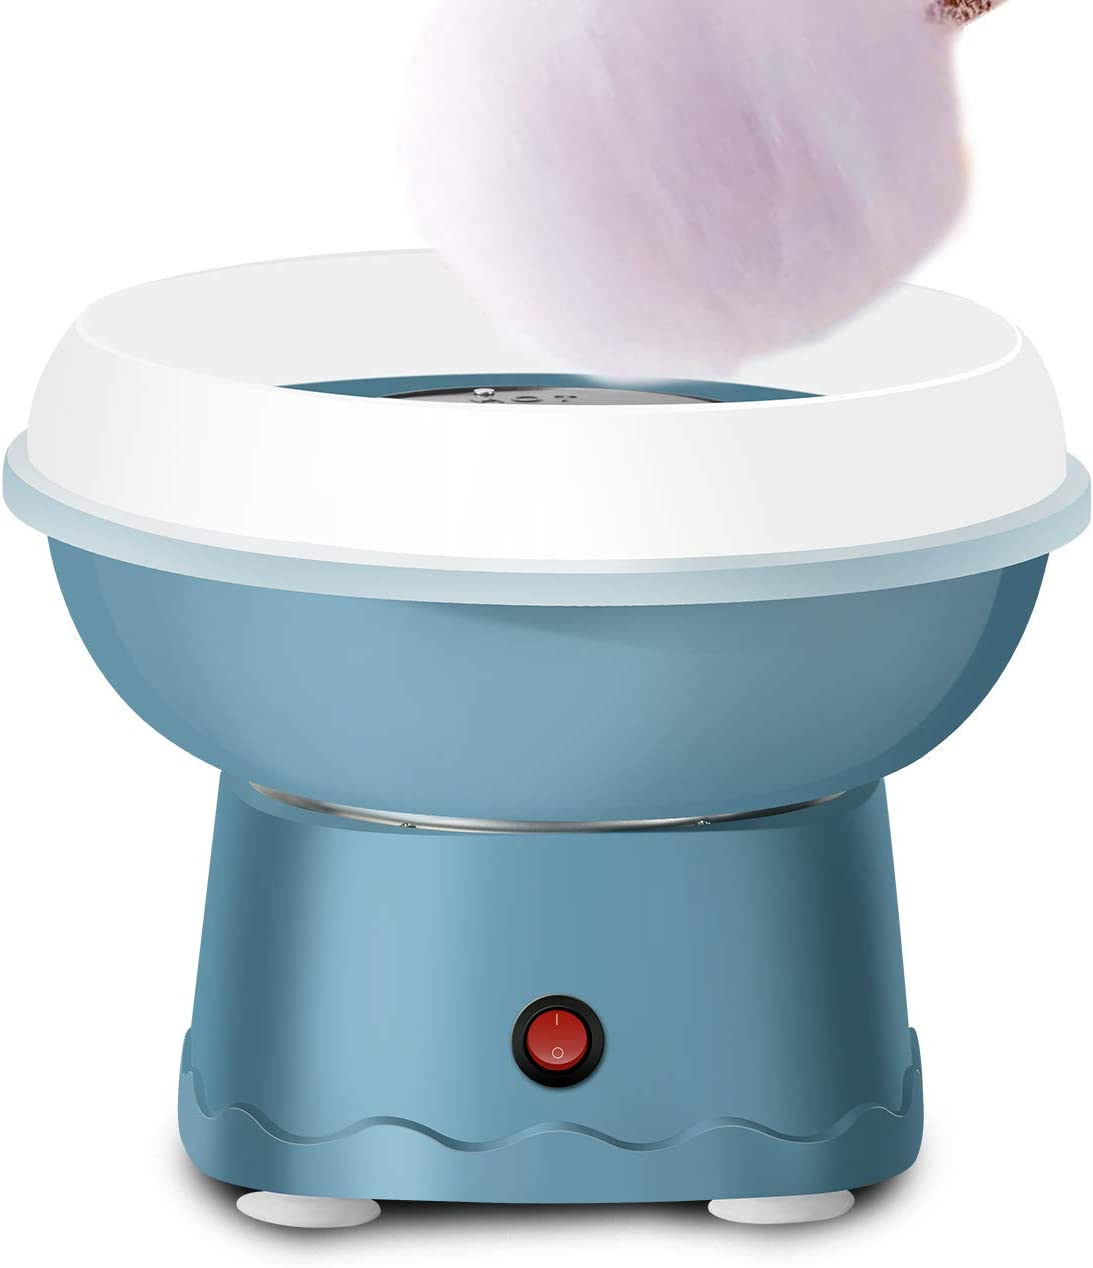 MARIDA Cotton Candy Machine Gifts 1 year warranty Kids for Tampa Mall Choice Pink